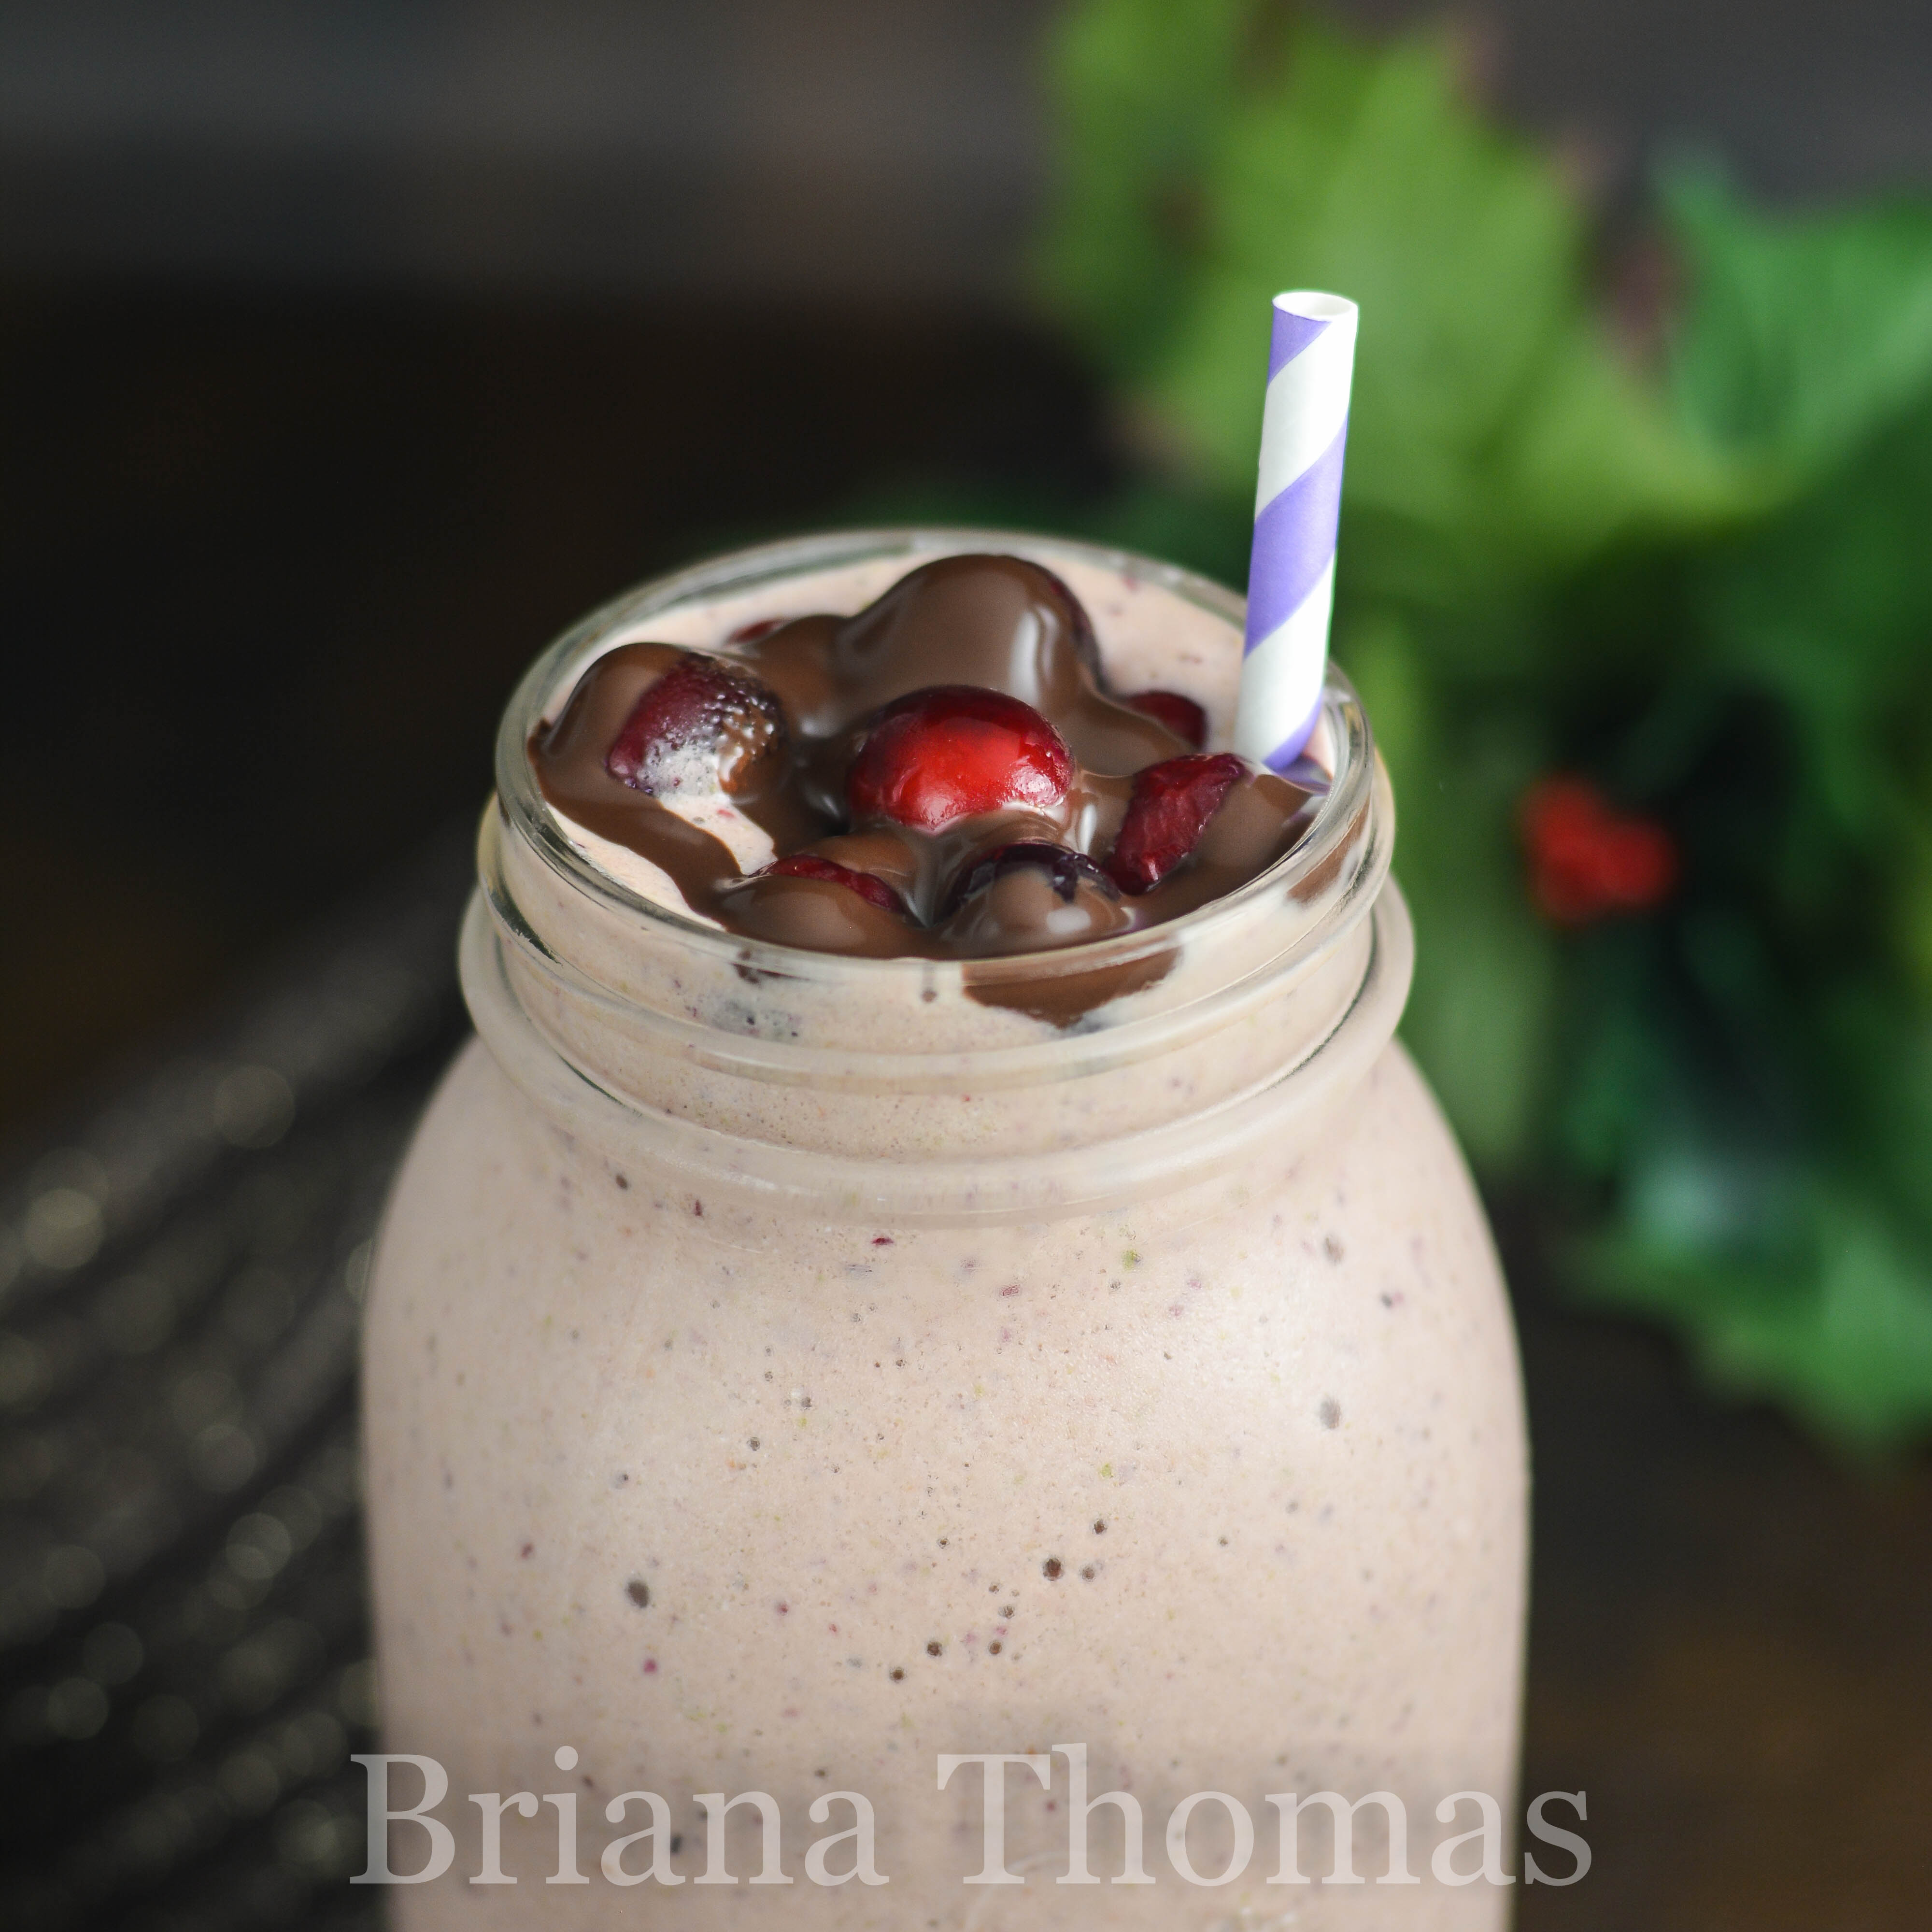 This Chocolate-Covered Cranberry Superfood Shake is straight up HEALTH in a Mason jar! A tasty way to get your okra in. THM Fuel Pull, low carb, low fat